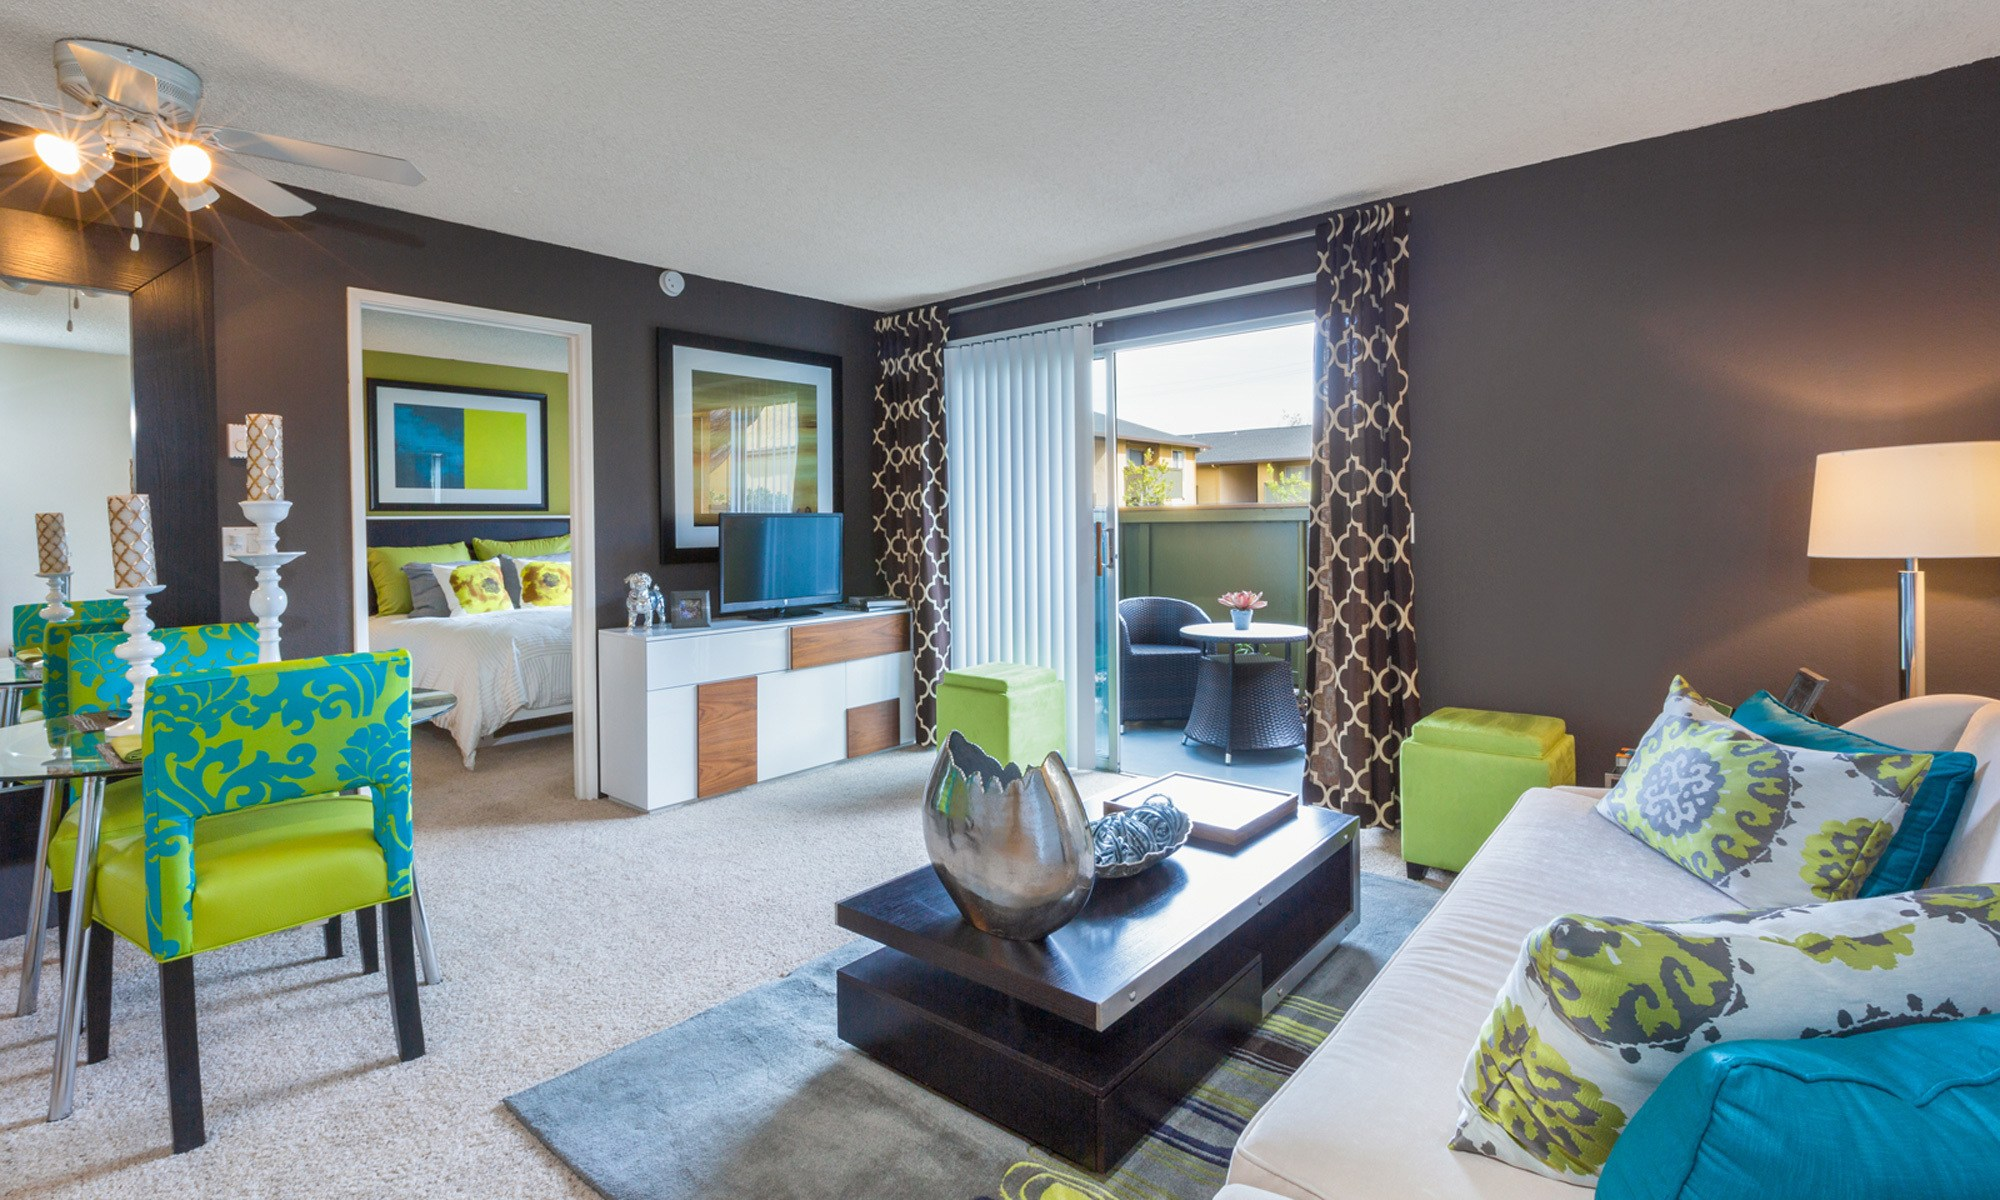 Pet Friendly Apartments In Sunnyvale Ca